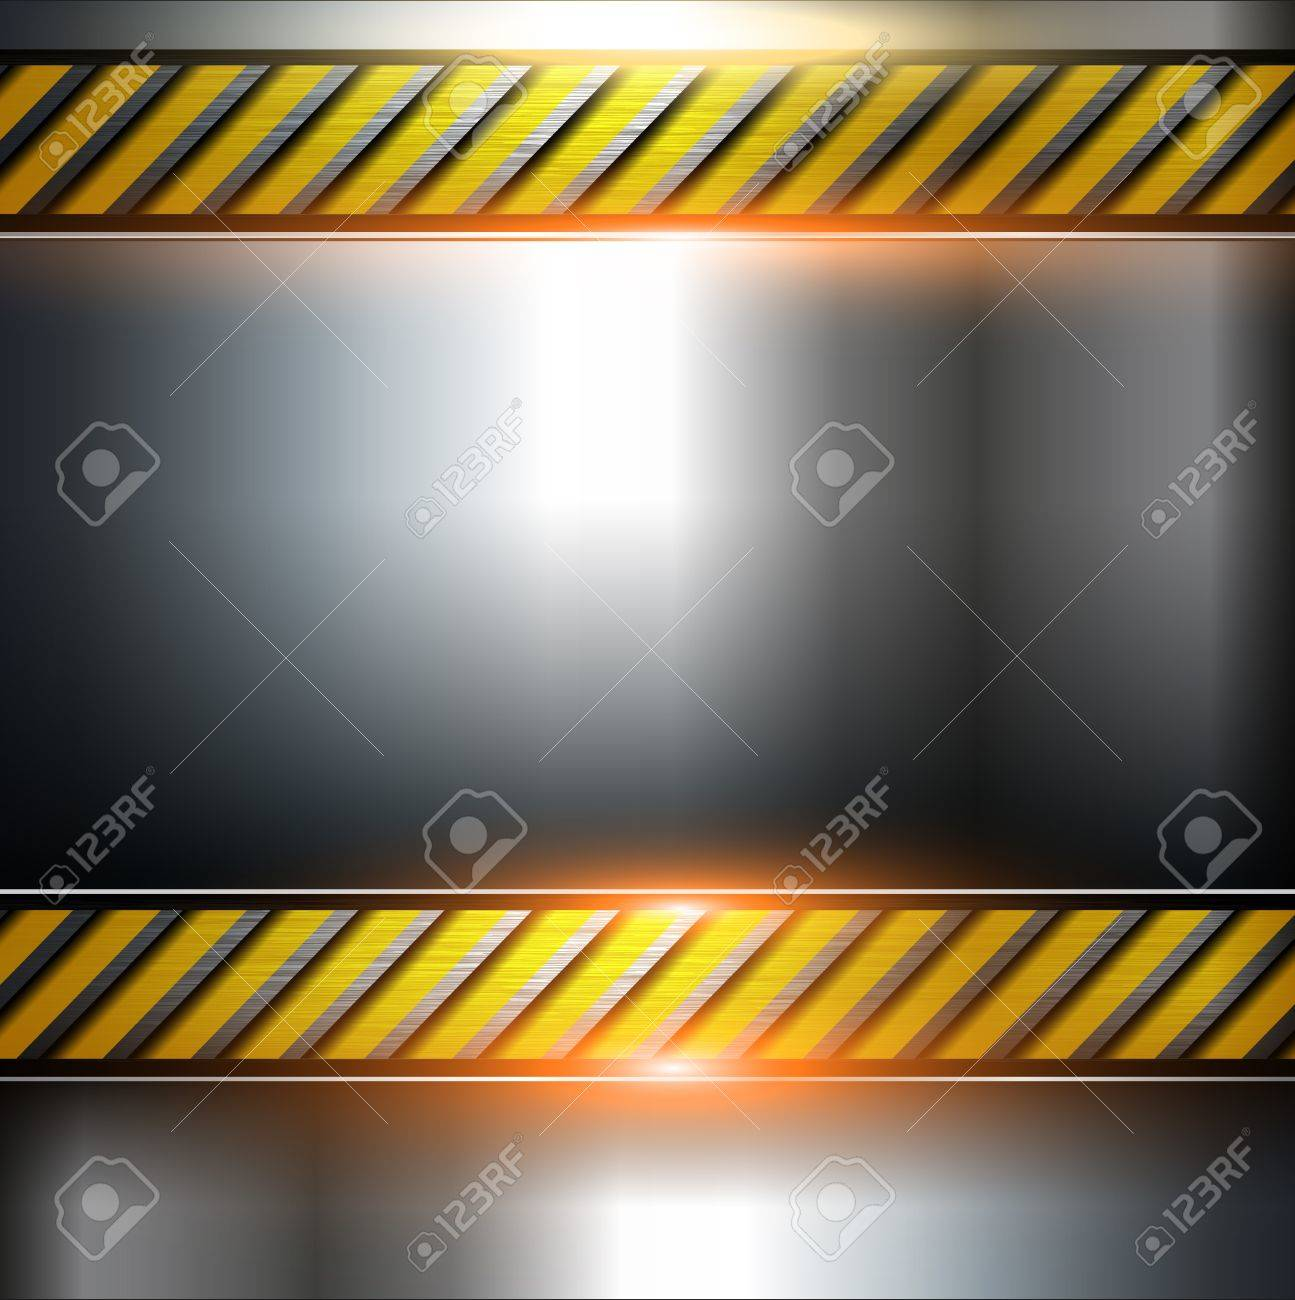 Abstract  background, metal template with warning stripe, vector. Stock Vector - 10478199